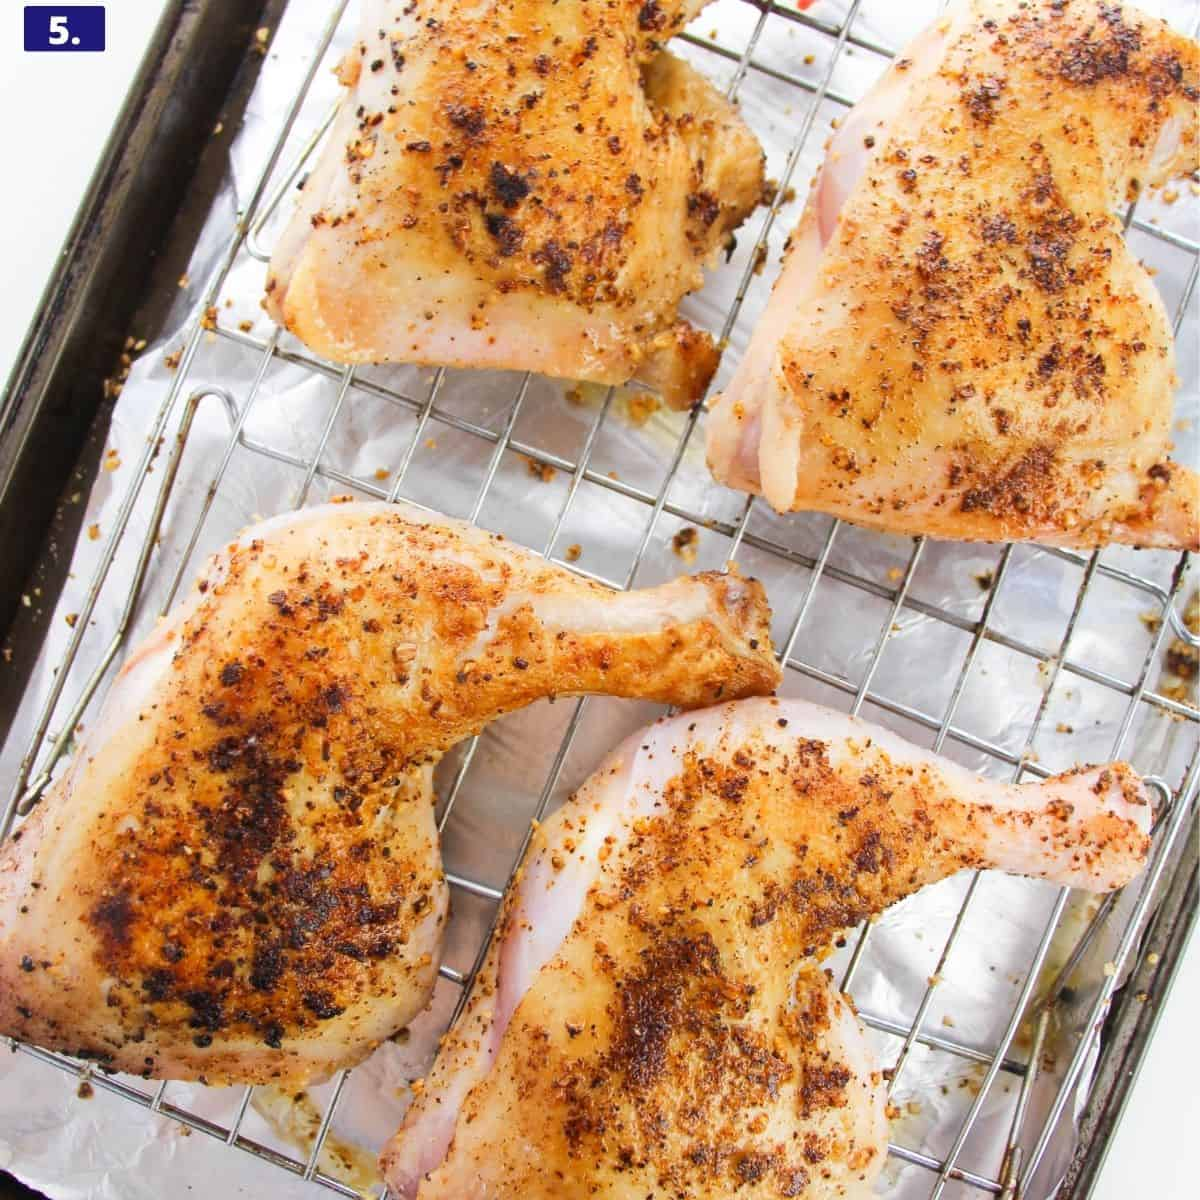 chicken quarters with spice rub on a baking sheet ready to be baked